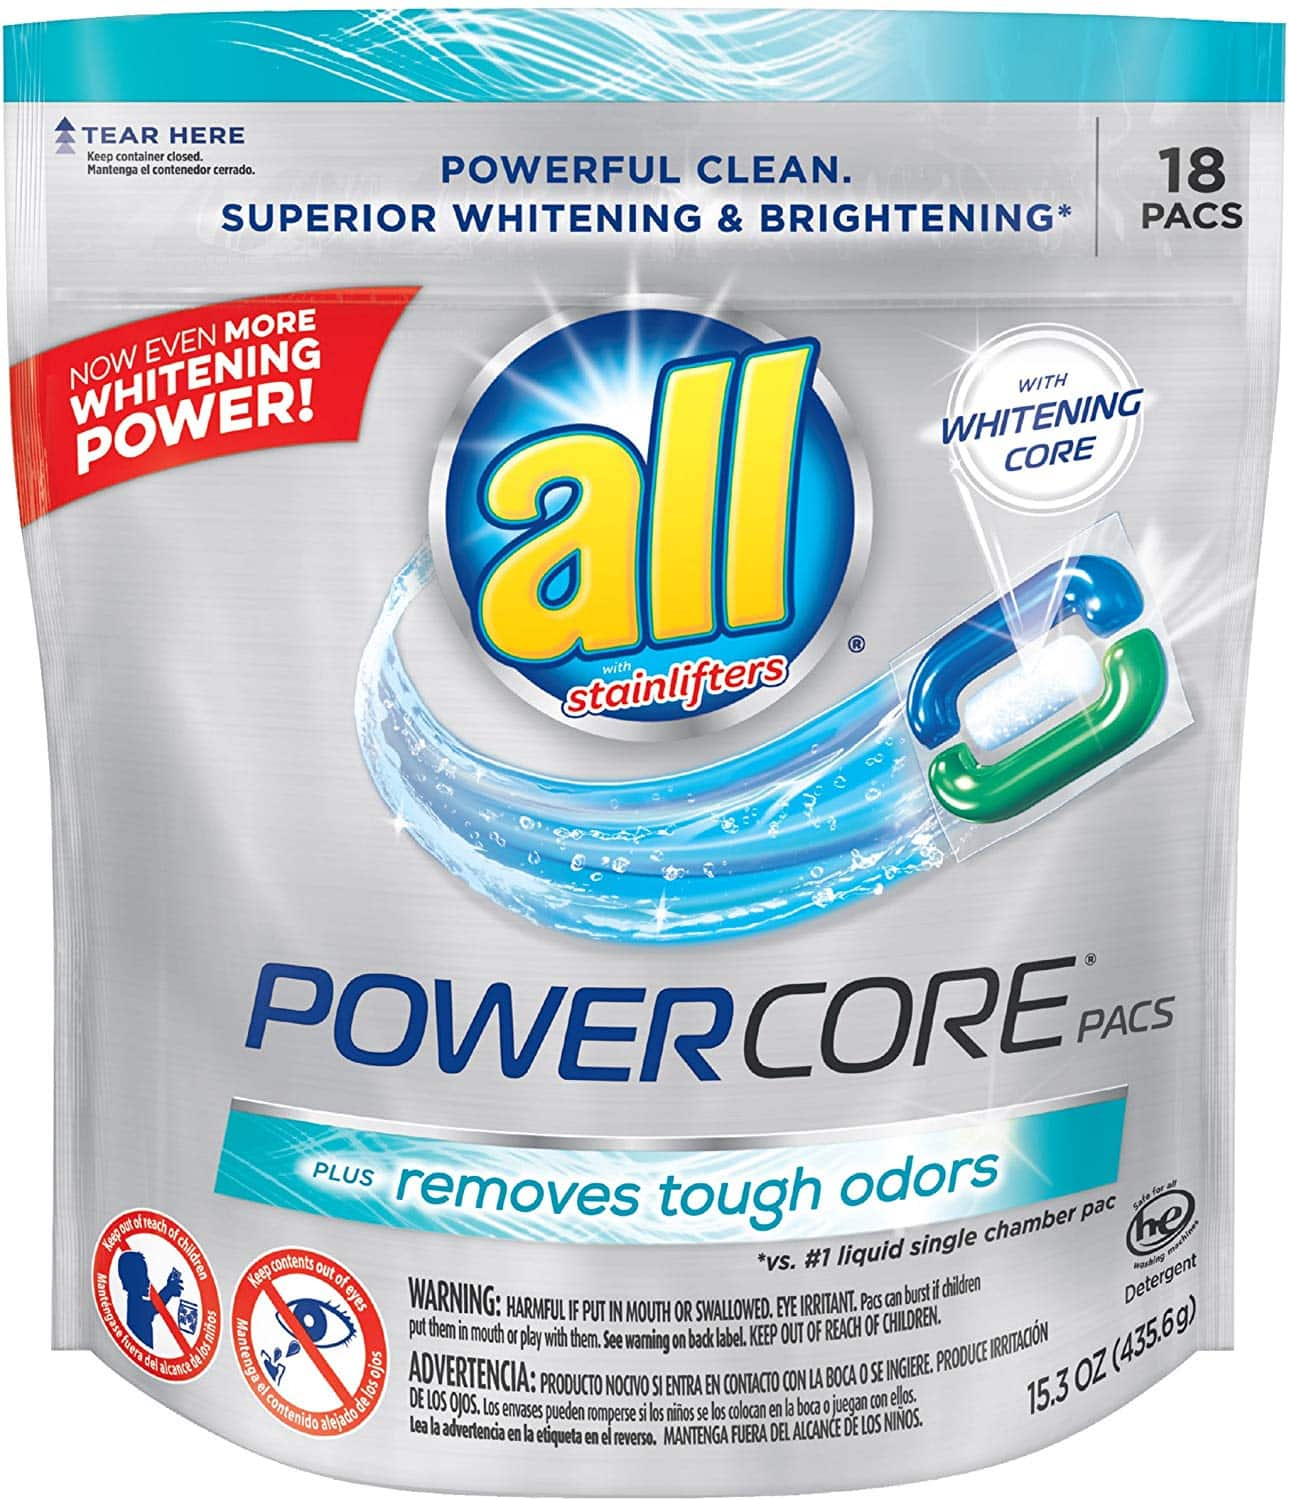 all POWERCORE PACS Laundry Detergent 18 ct Pouch $2.99